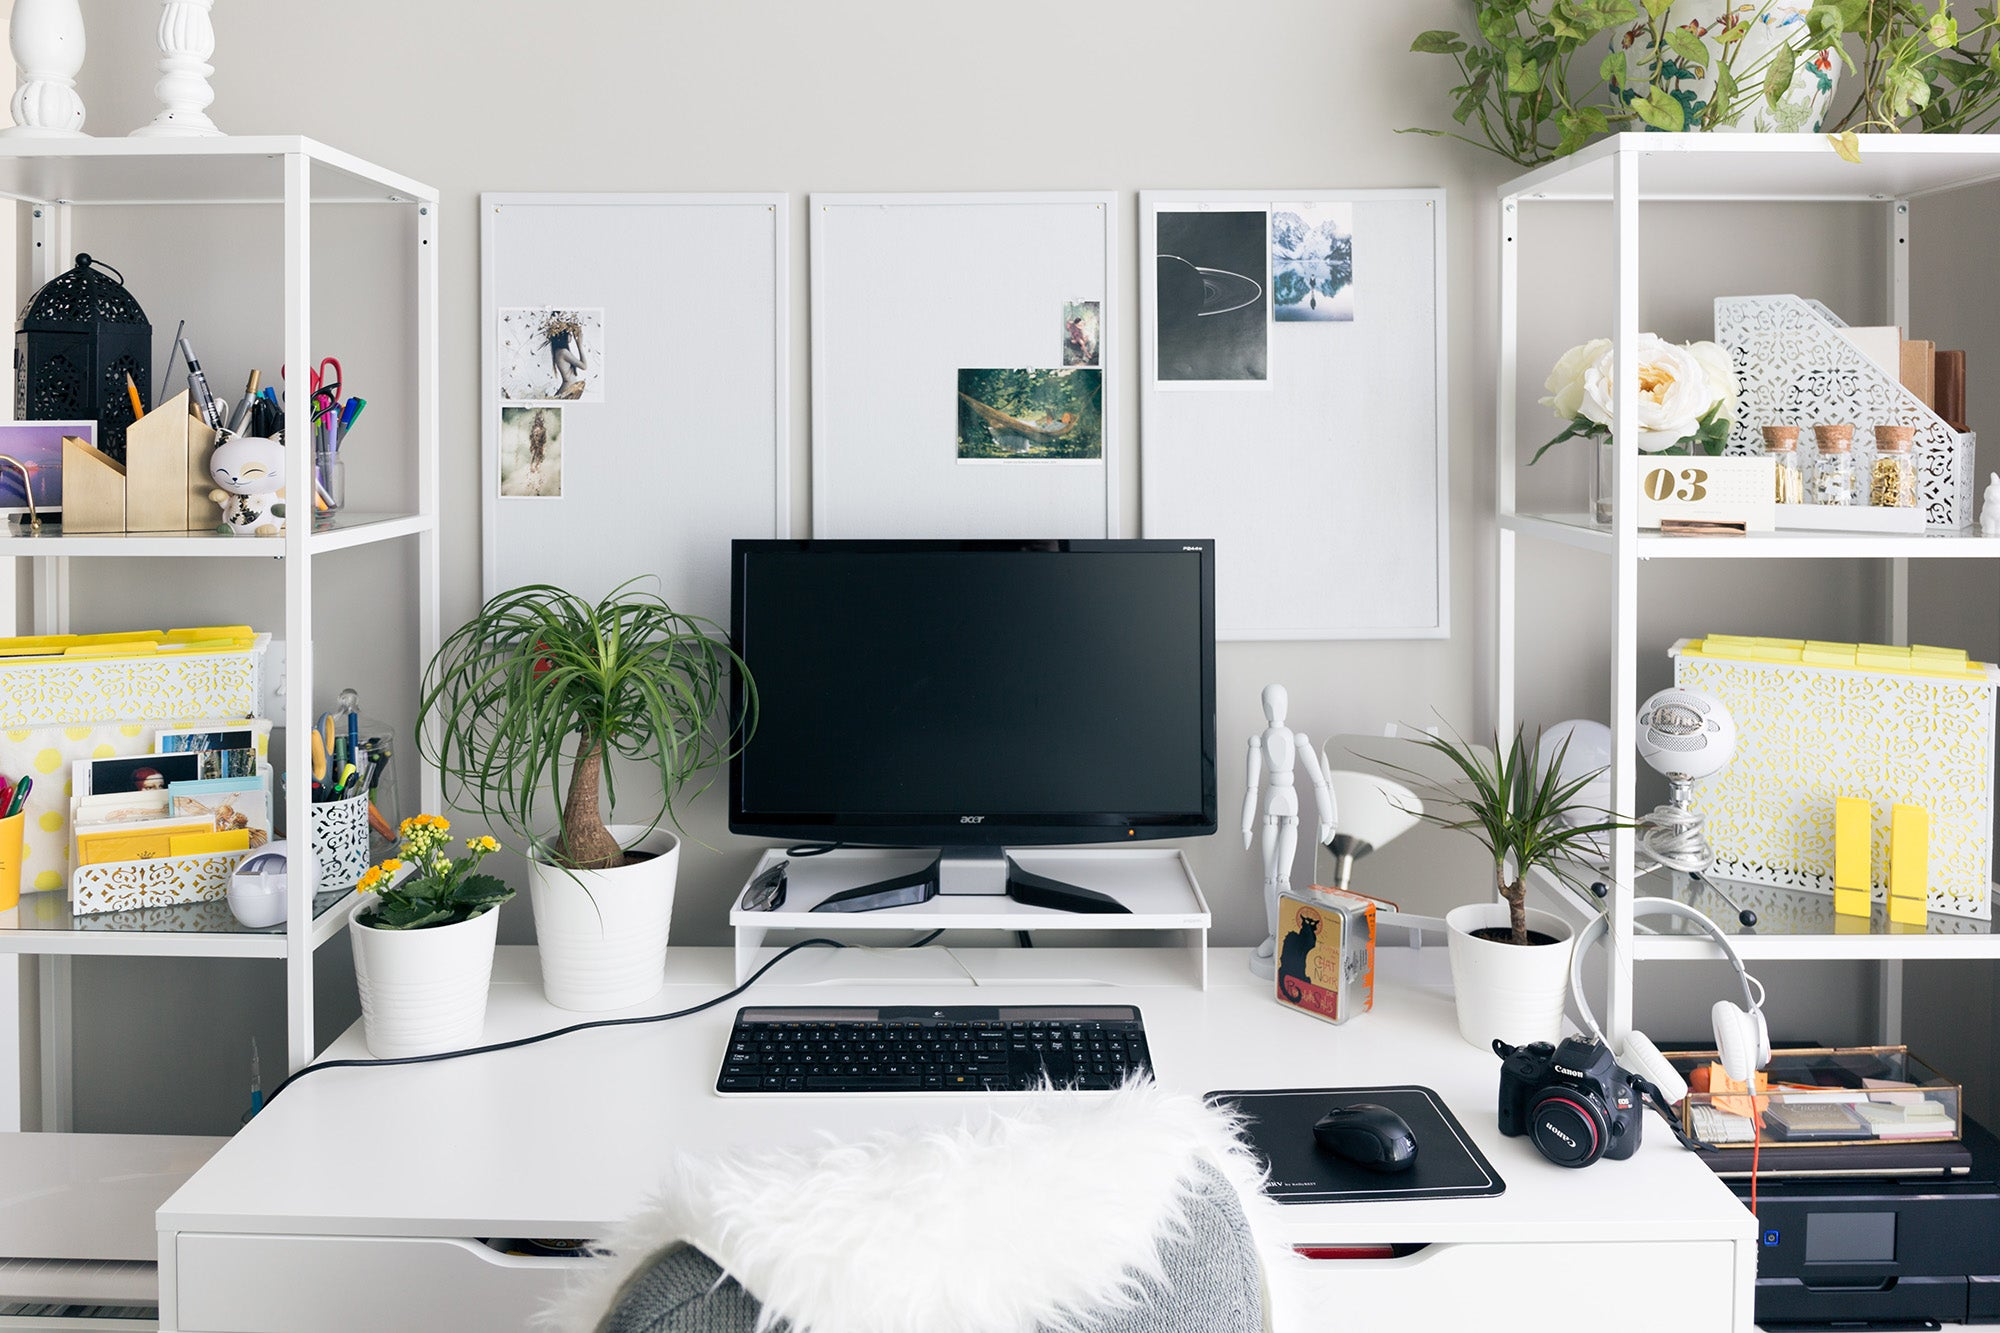 office workspace with a computer on a desk, plants, and two storage shelves beside the desk